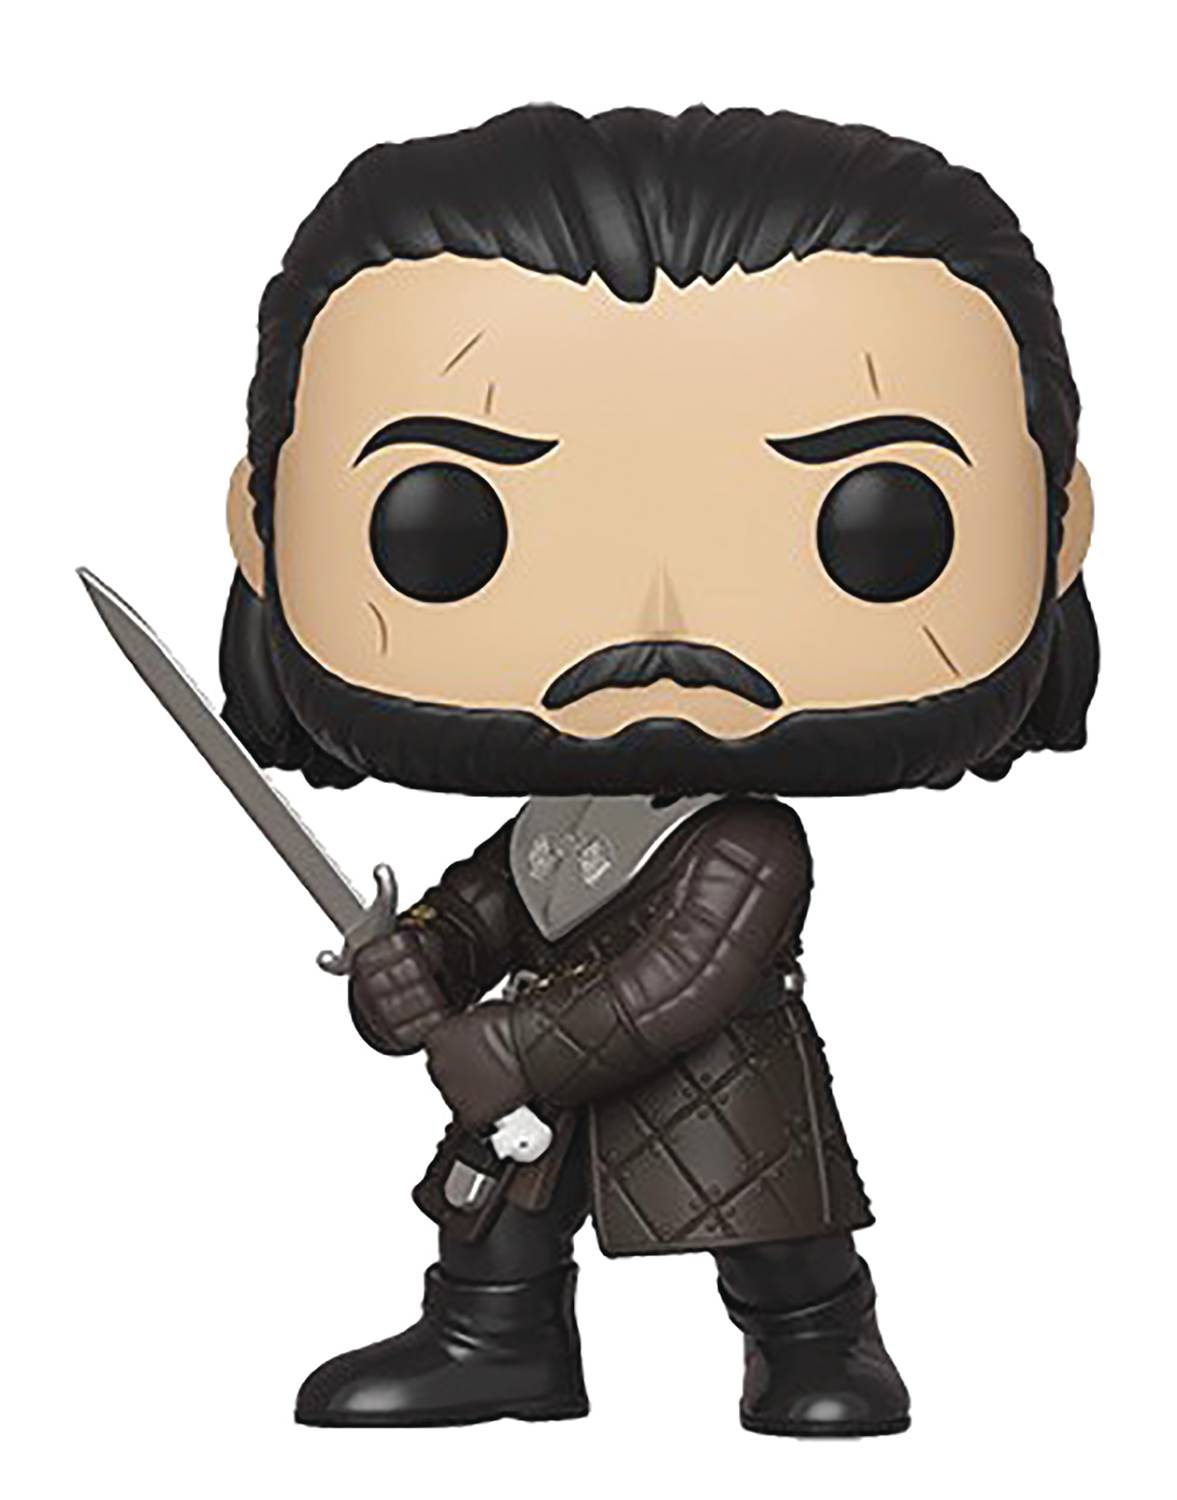 POP TV GAME OF THRONES JON SNOW VINYL FIG